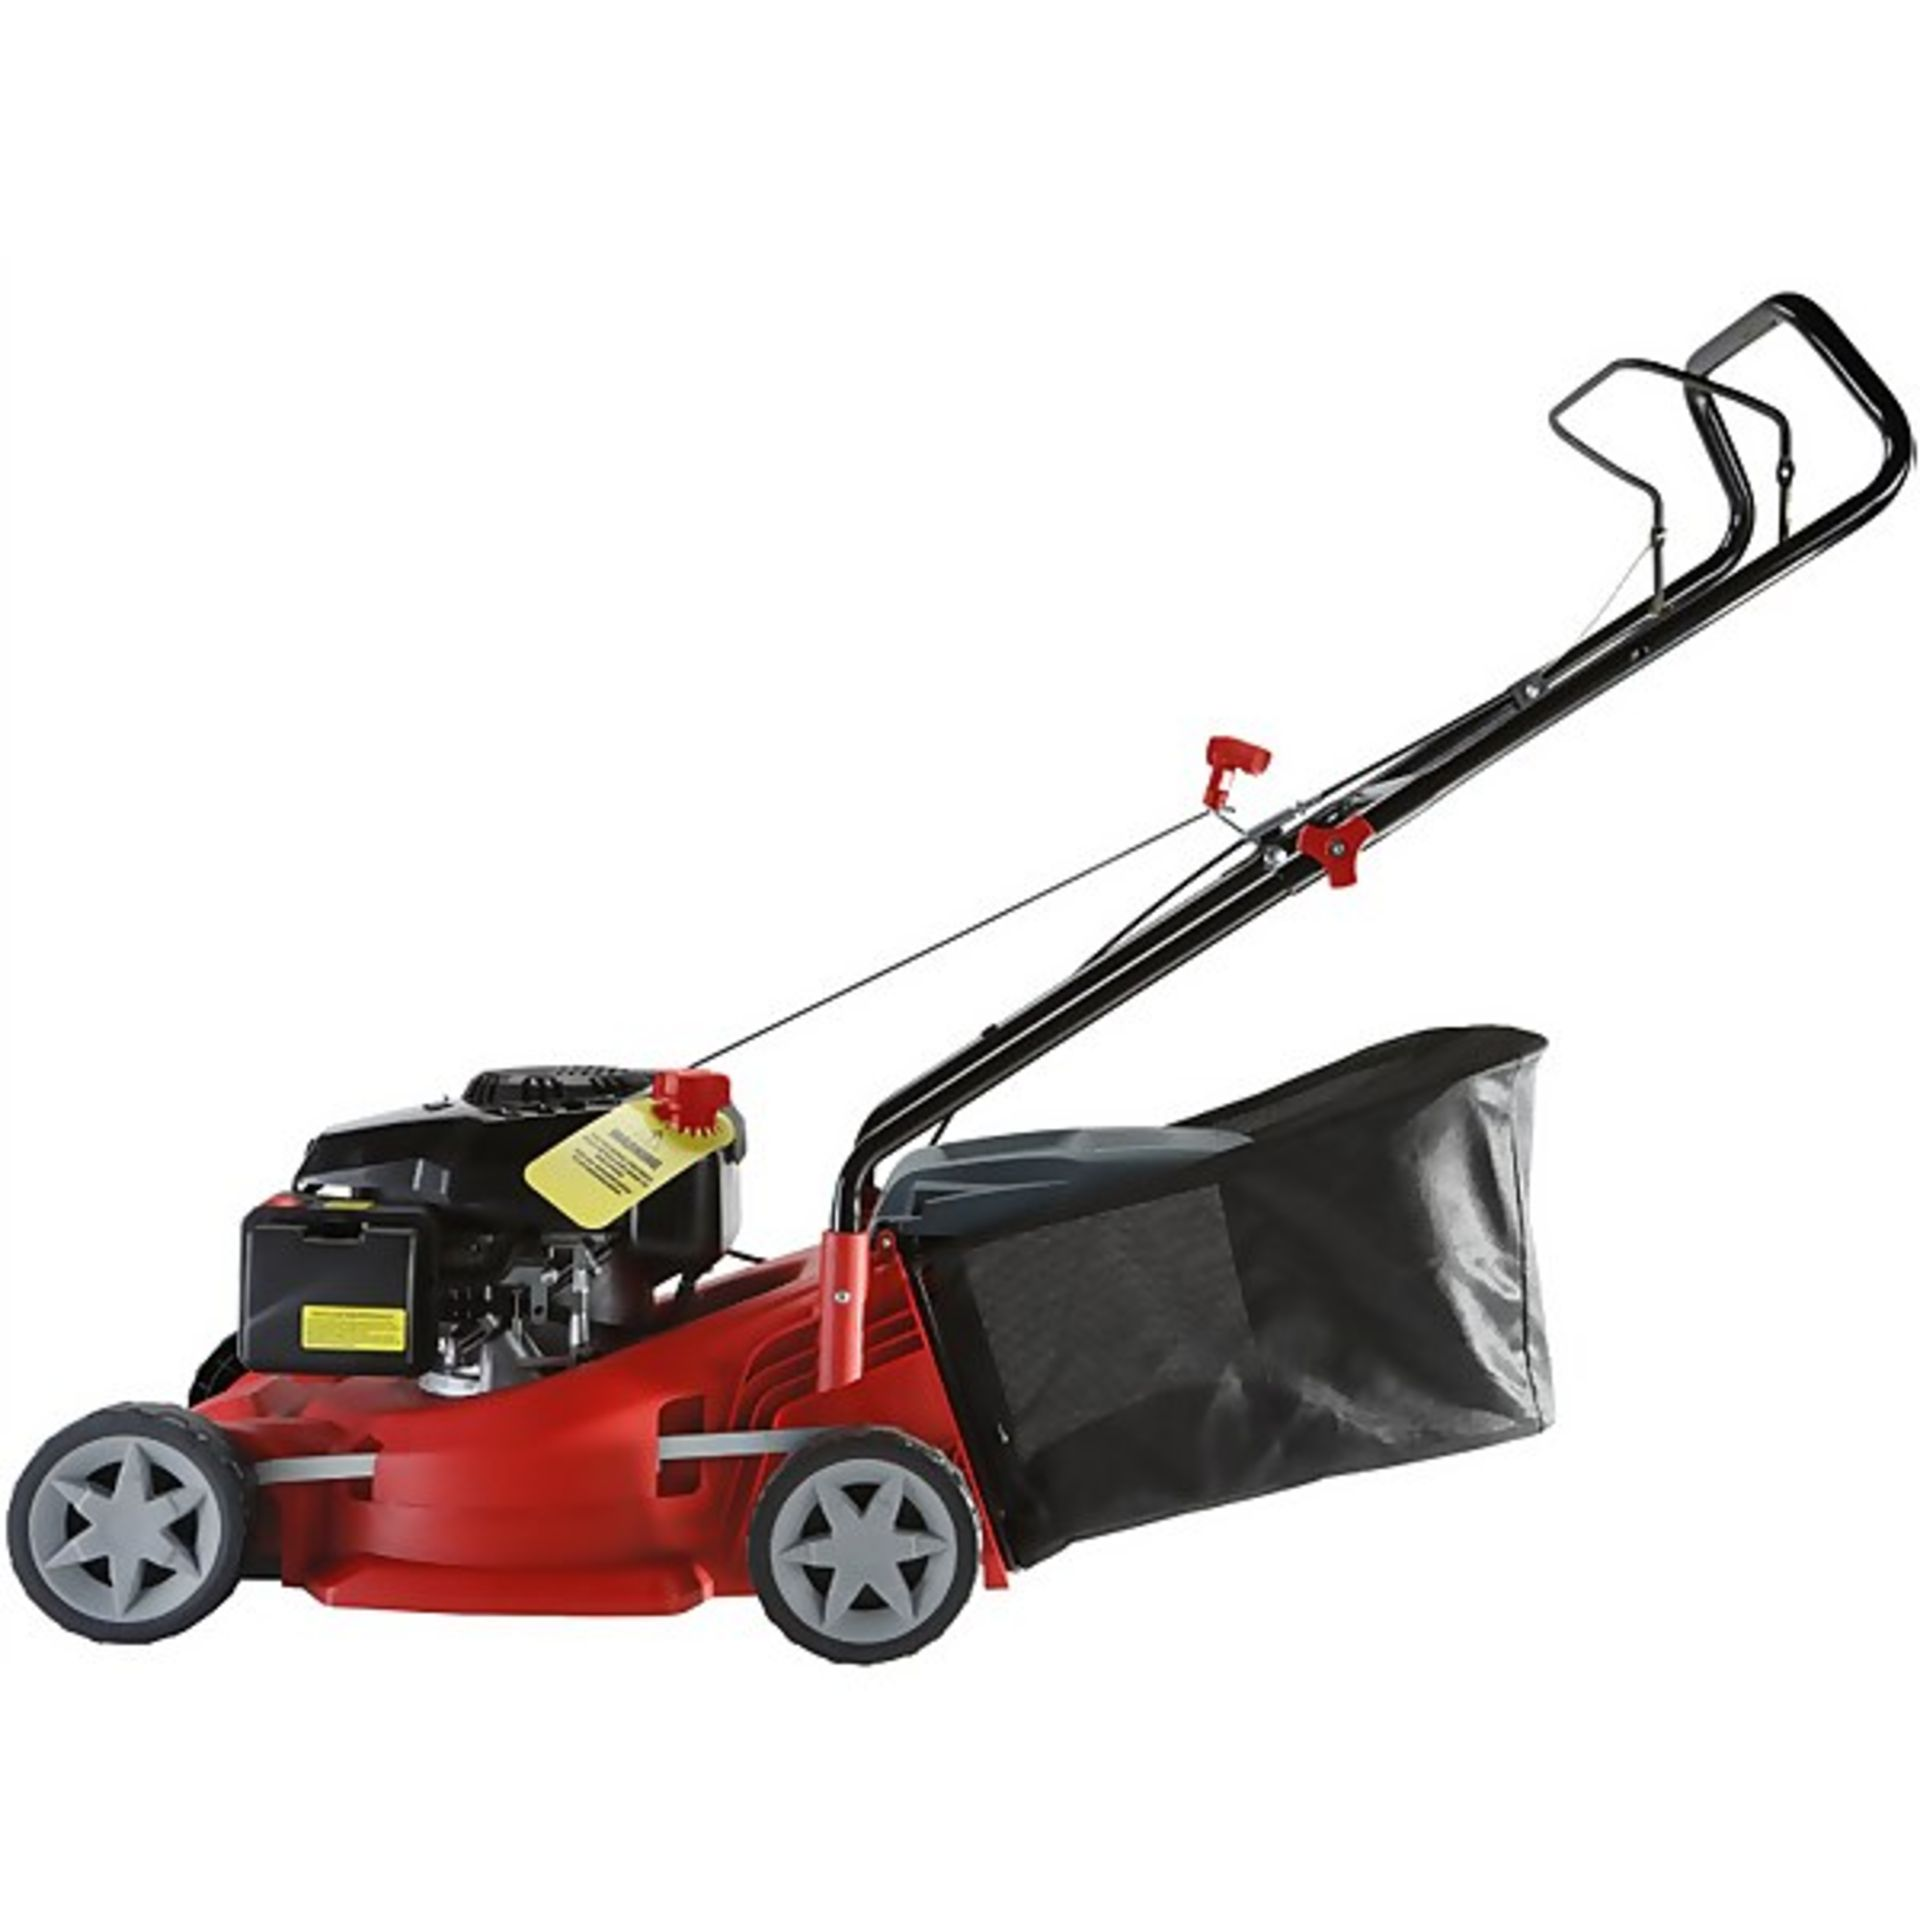 (P10) 1x Sovereign 40cm Push Petrol Lawn Mower 127cc RRP £125. New, Sealed Item With Damage To Box - Image 2 of 5